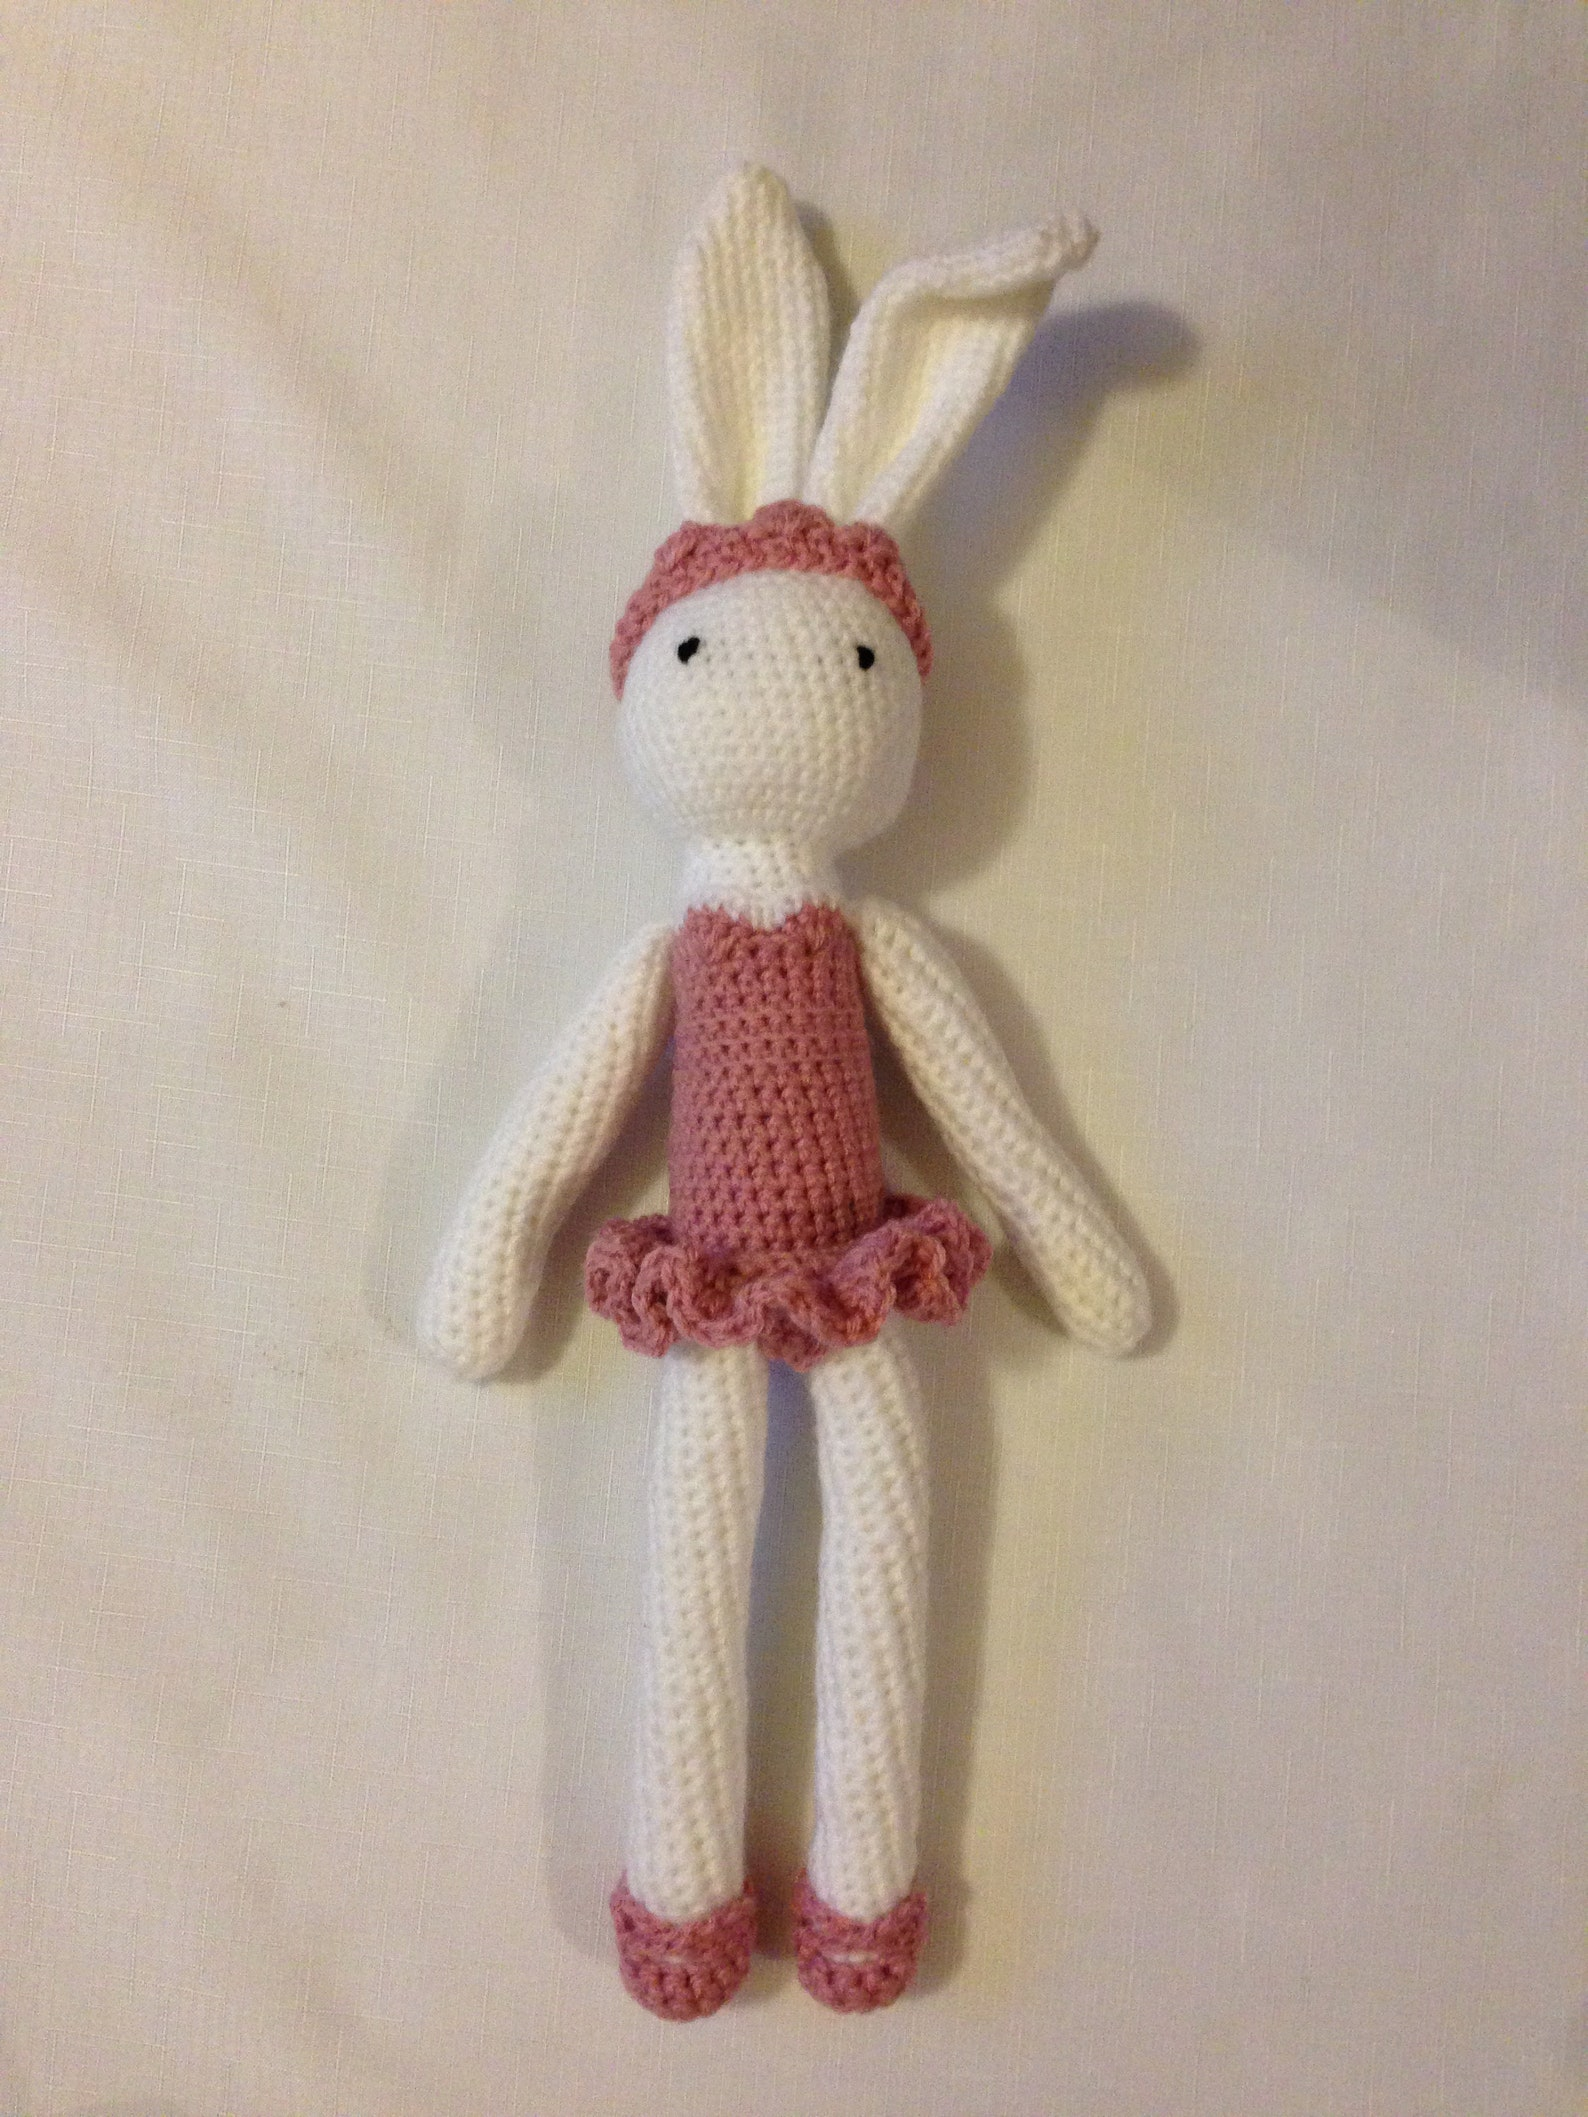 ella ballerina bunny with removeable bow, tiara, and ballet shoes | crochet rabbit ballet doll soft toy